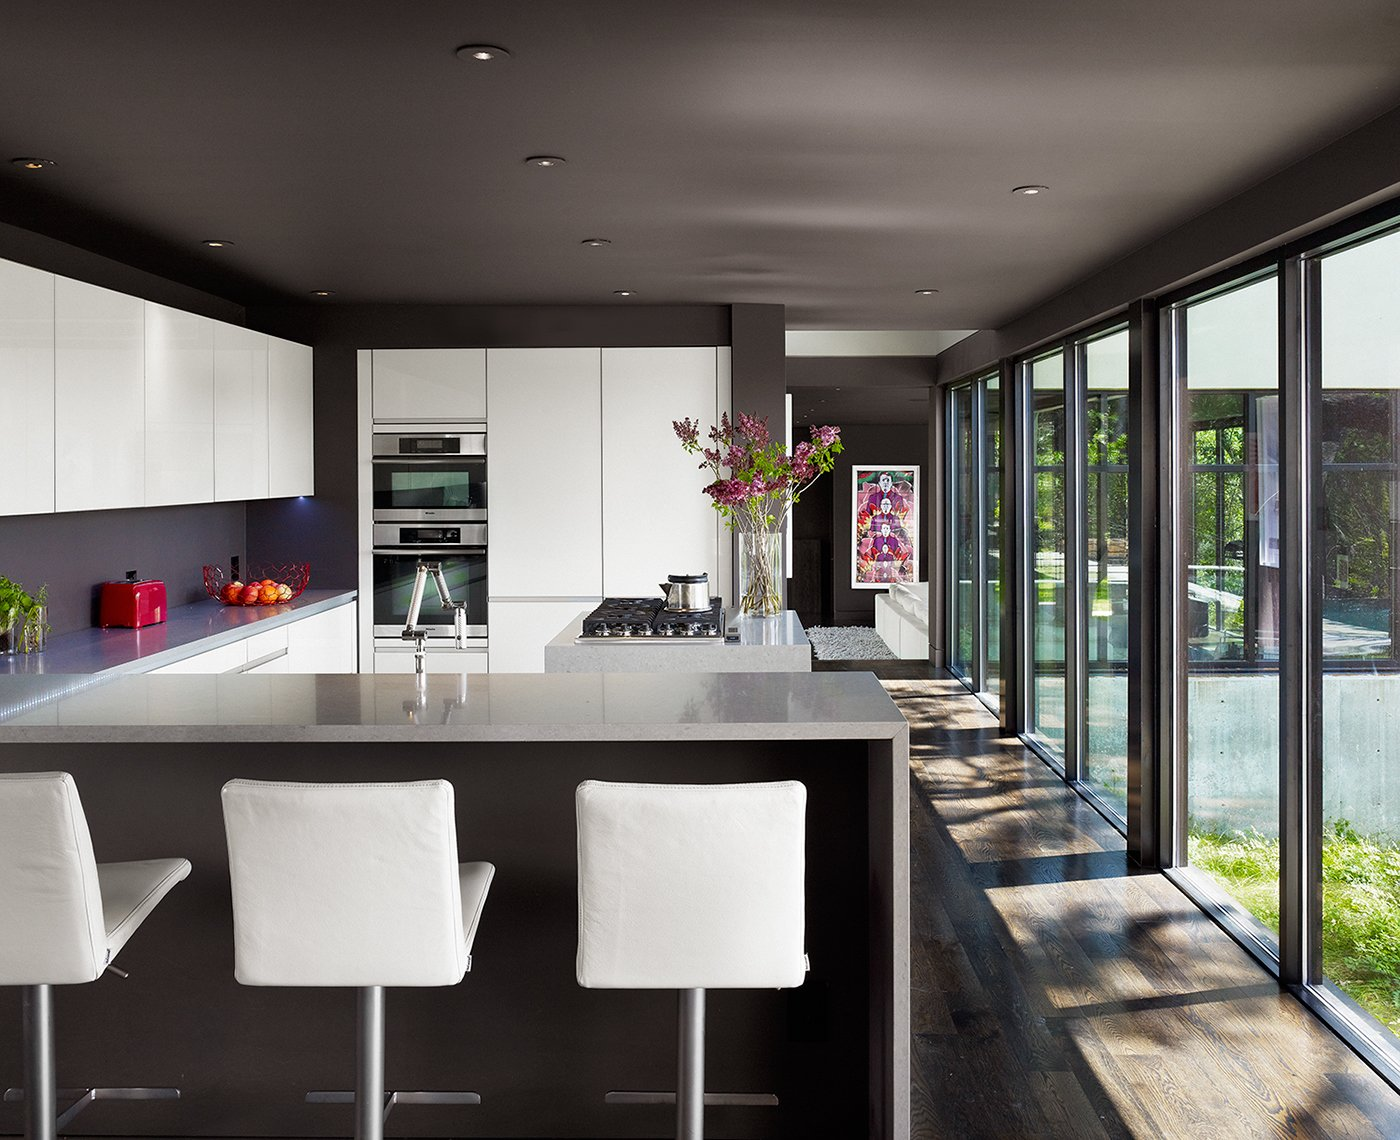 Kitchen, White Cabinet, and Dark Hardwood Floor Photographer: Casey Dunn  West Lake Hills Residence by Specht Architects